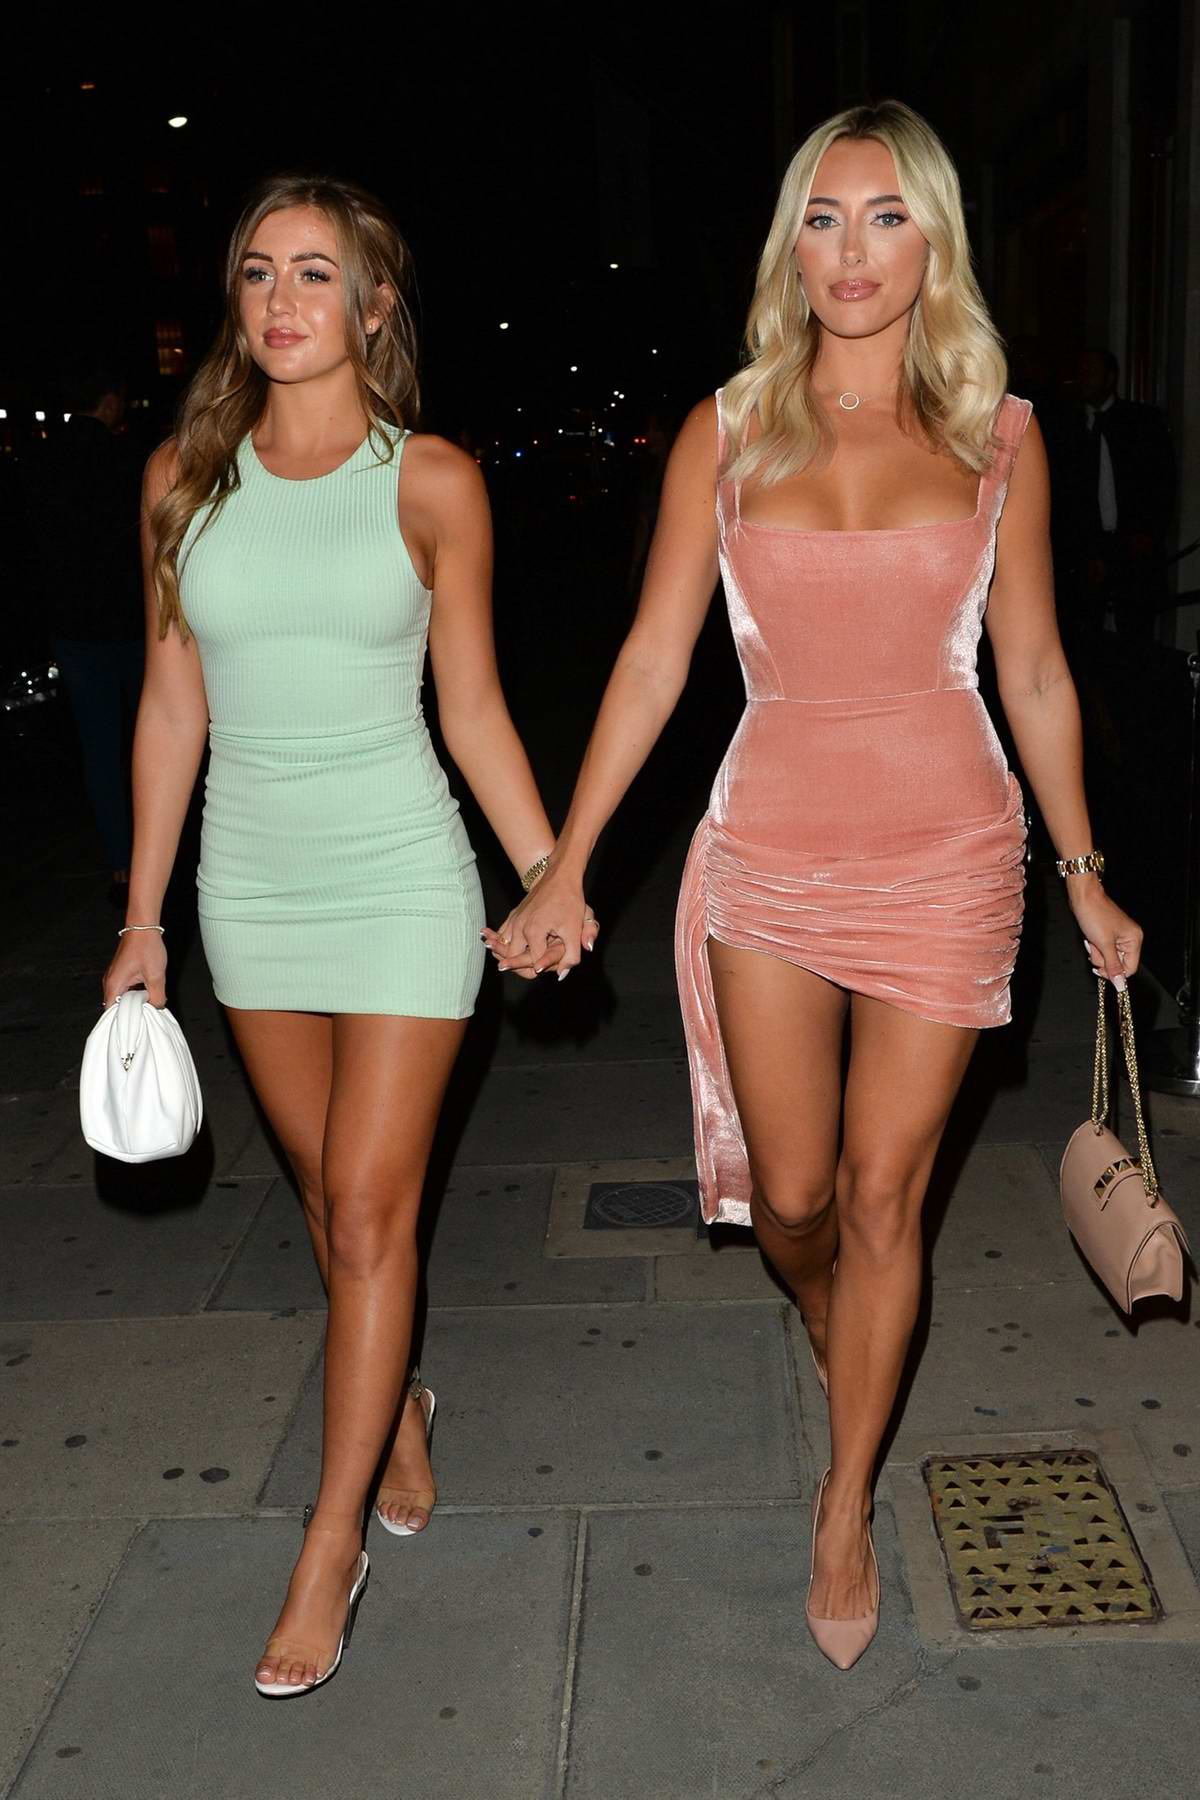 Amber Turner and Georgia Steel step out to celebrate Amber's birthday at Sumosan Twiga in London, UK